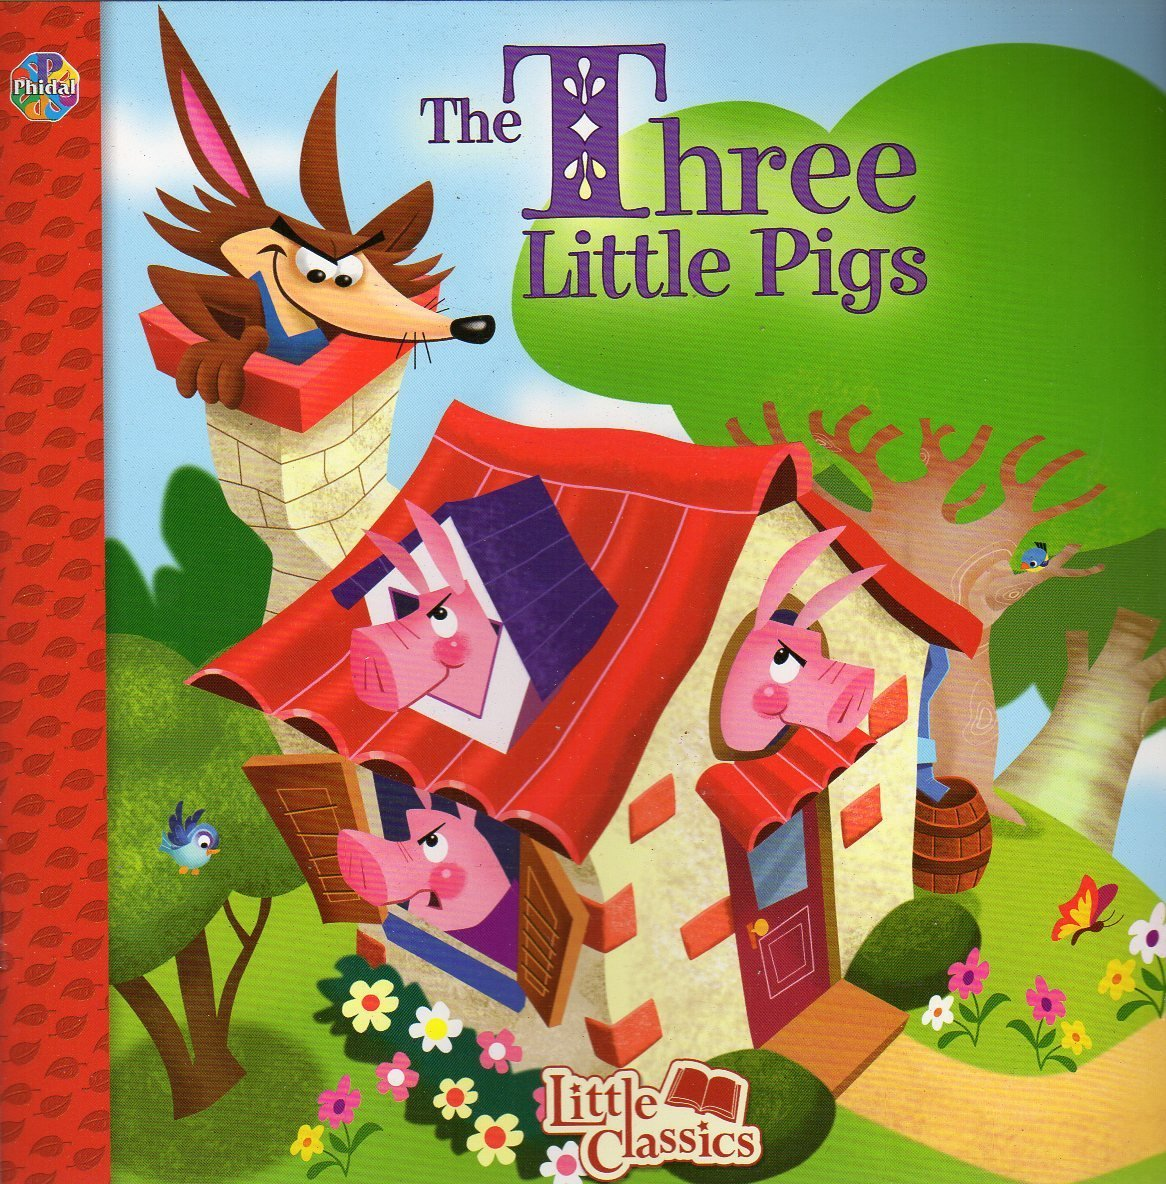 The Three Little Pigs - The Little Classics collection - Classic Fairy Tales